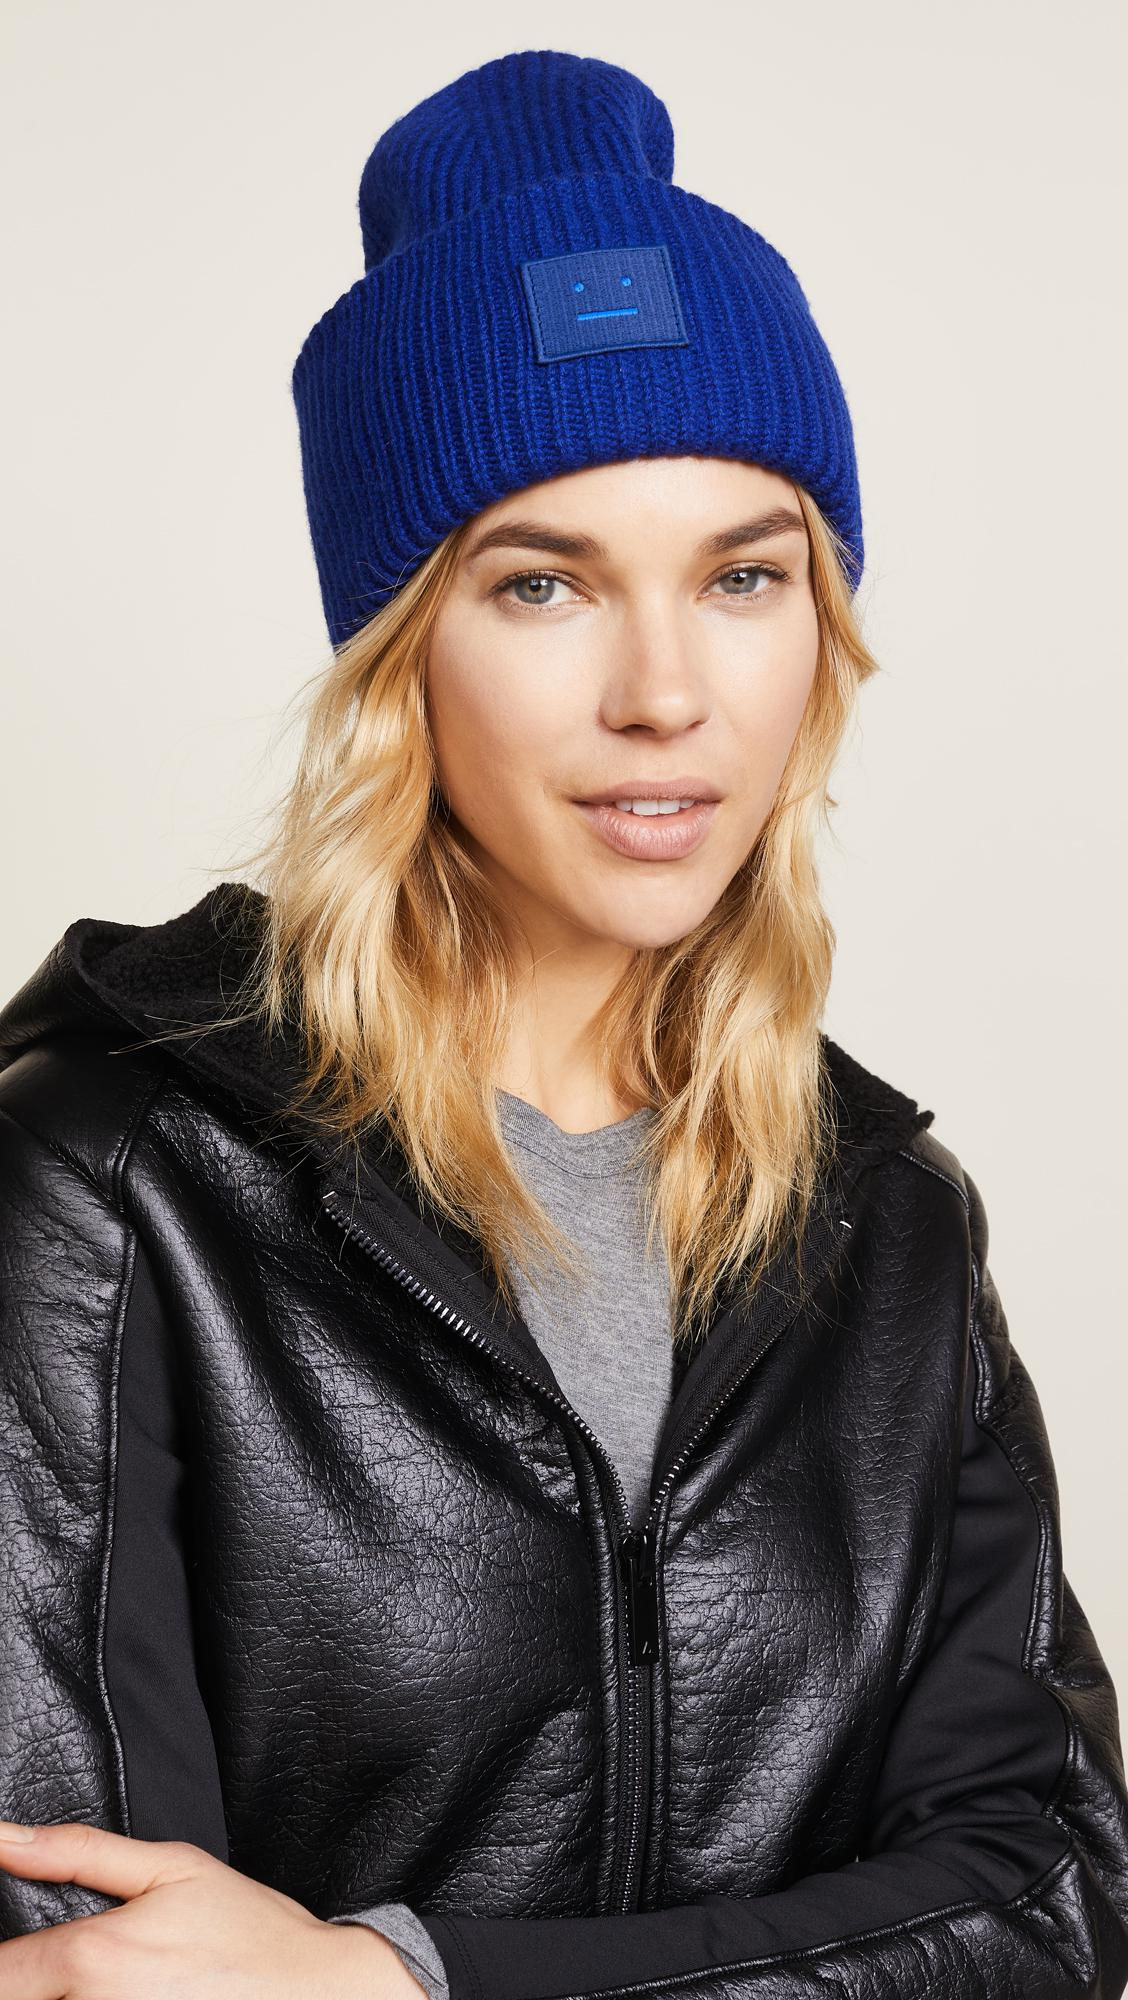 bb619c97fea Lyst - Acne Studios Pansy S Face Hat in Blue